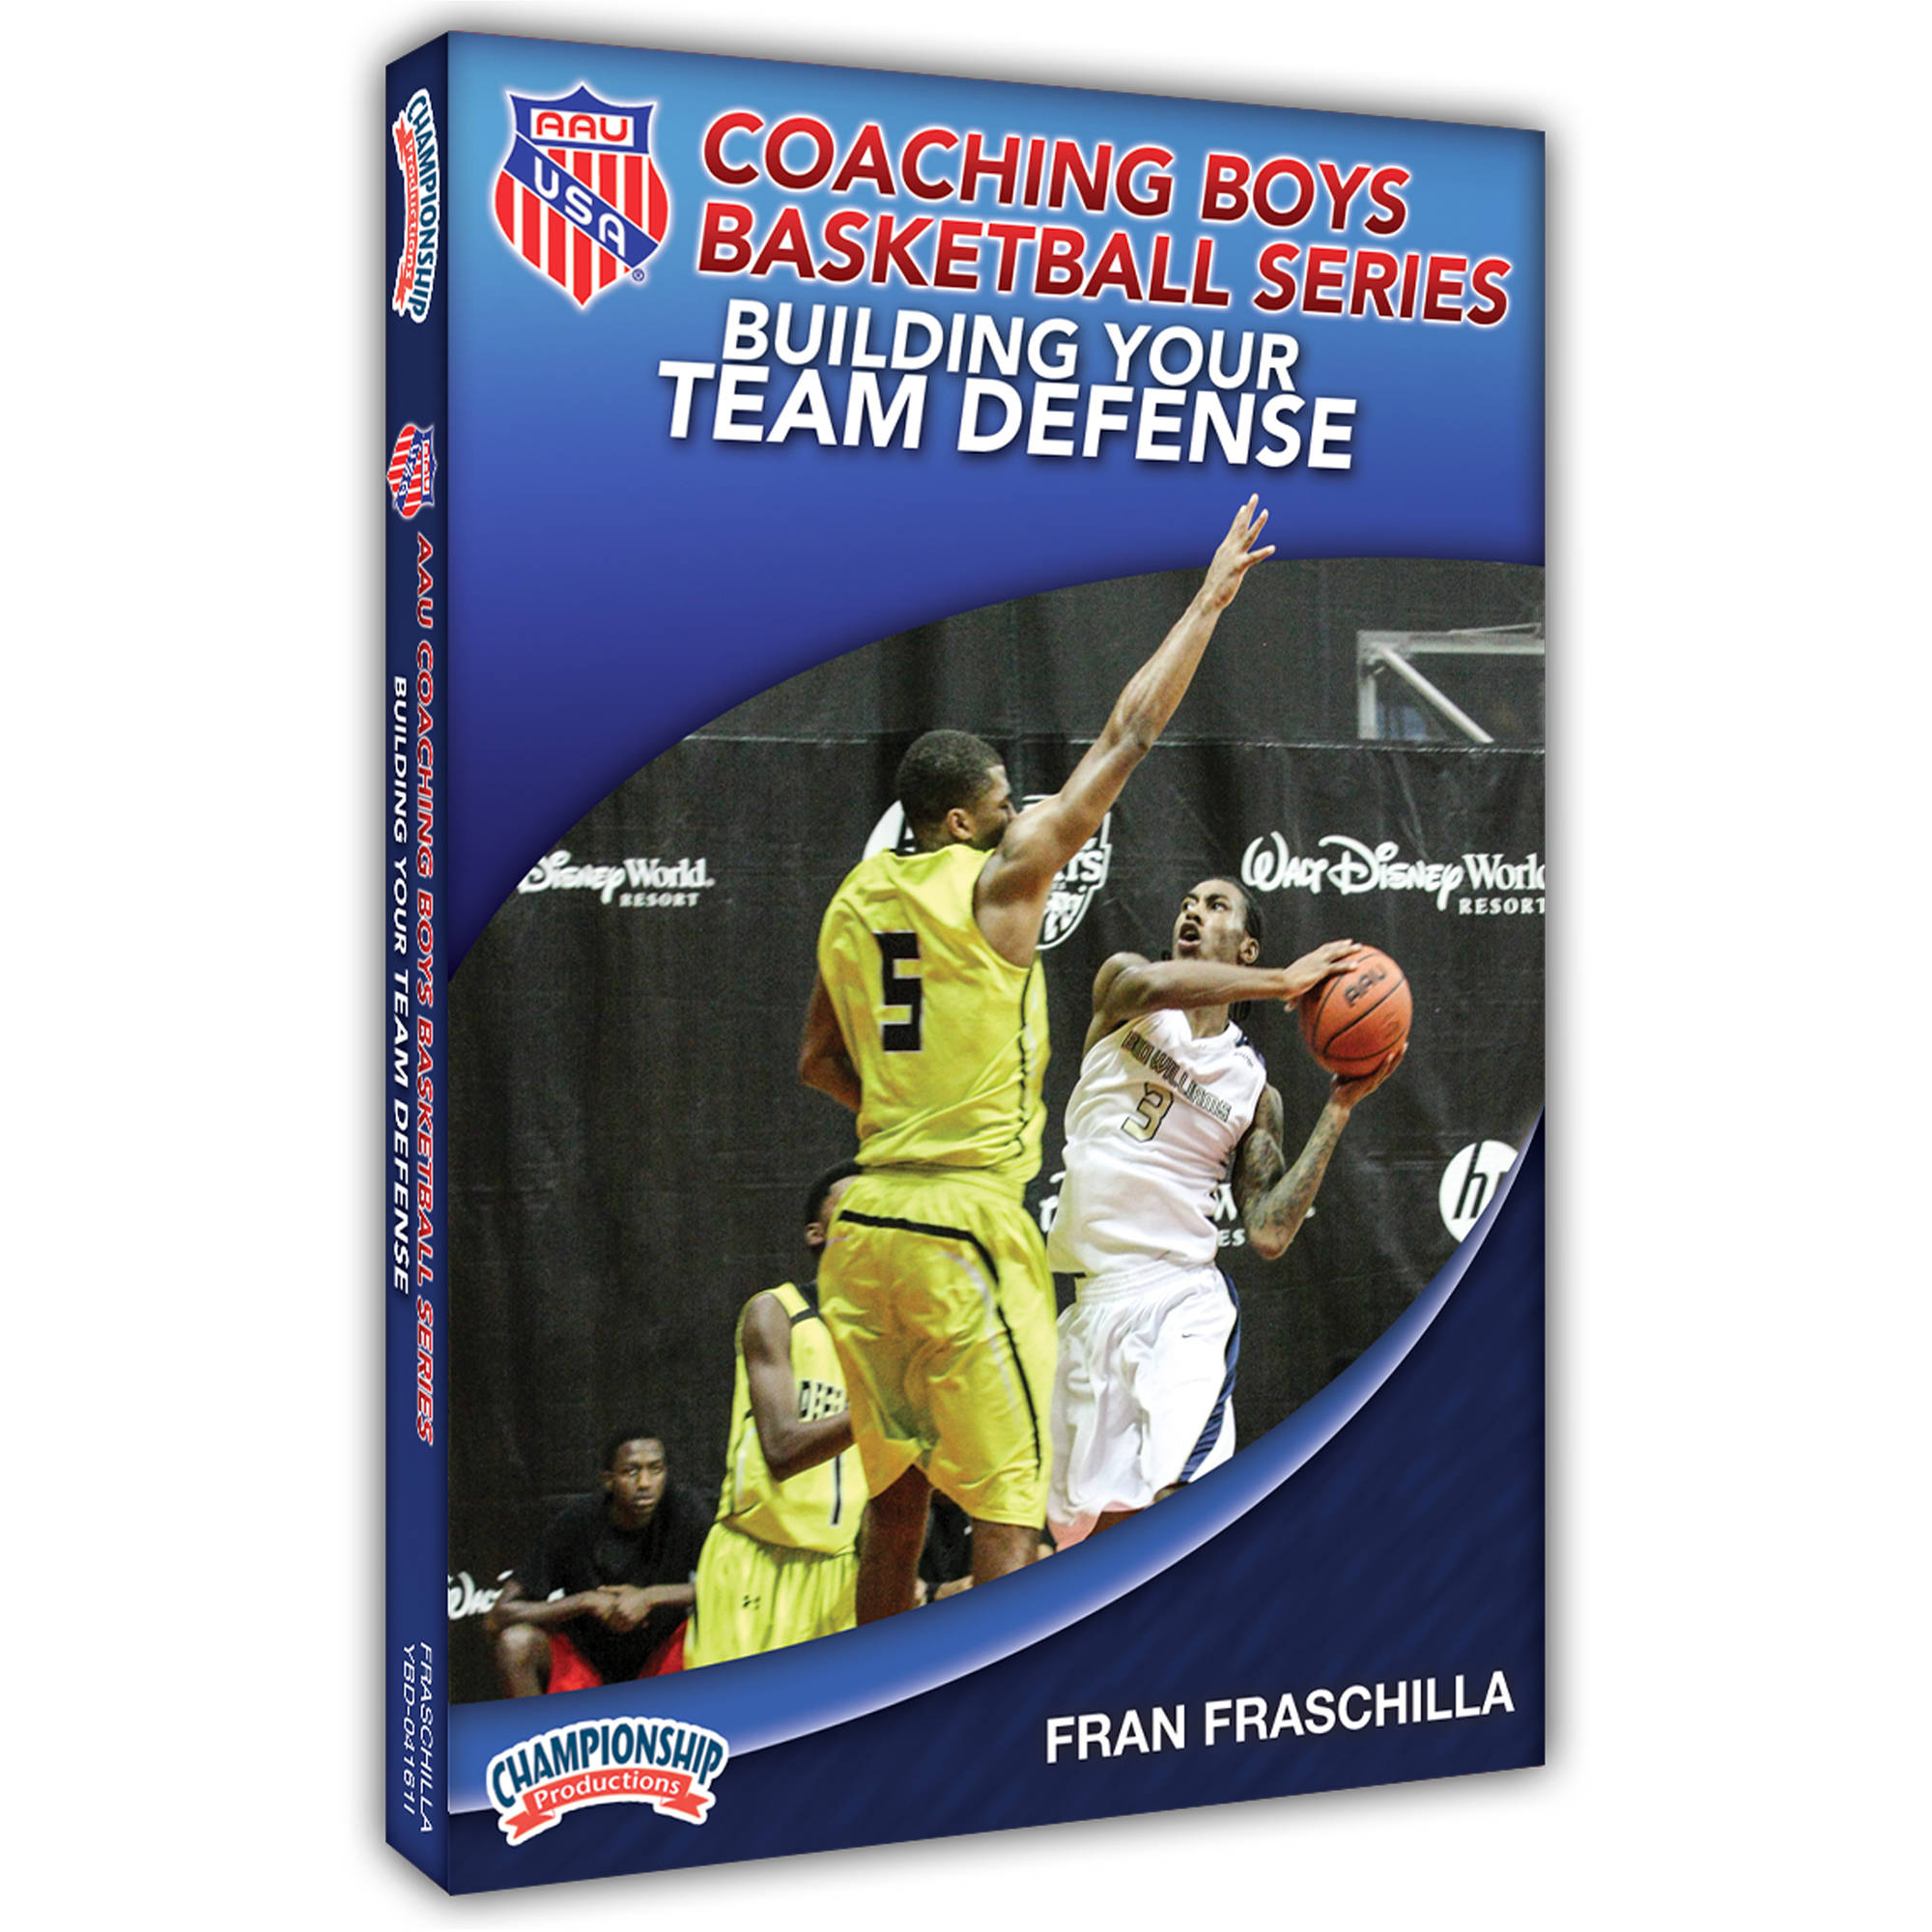 AAU Coaching Boys Basketball Series: Building Your Team Defense by Championship Productions